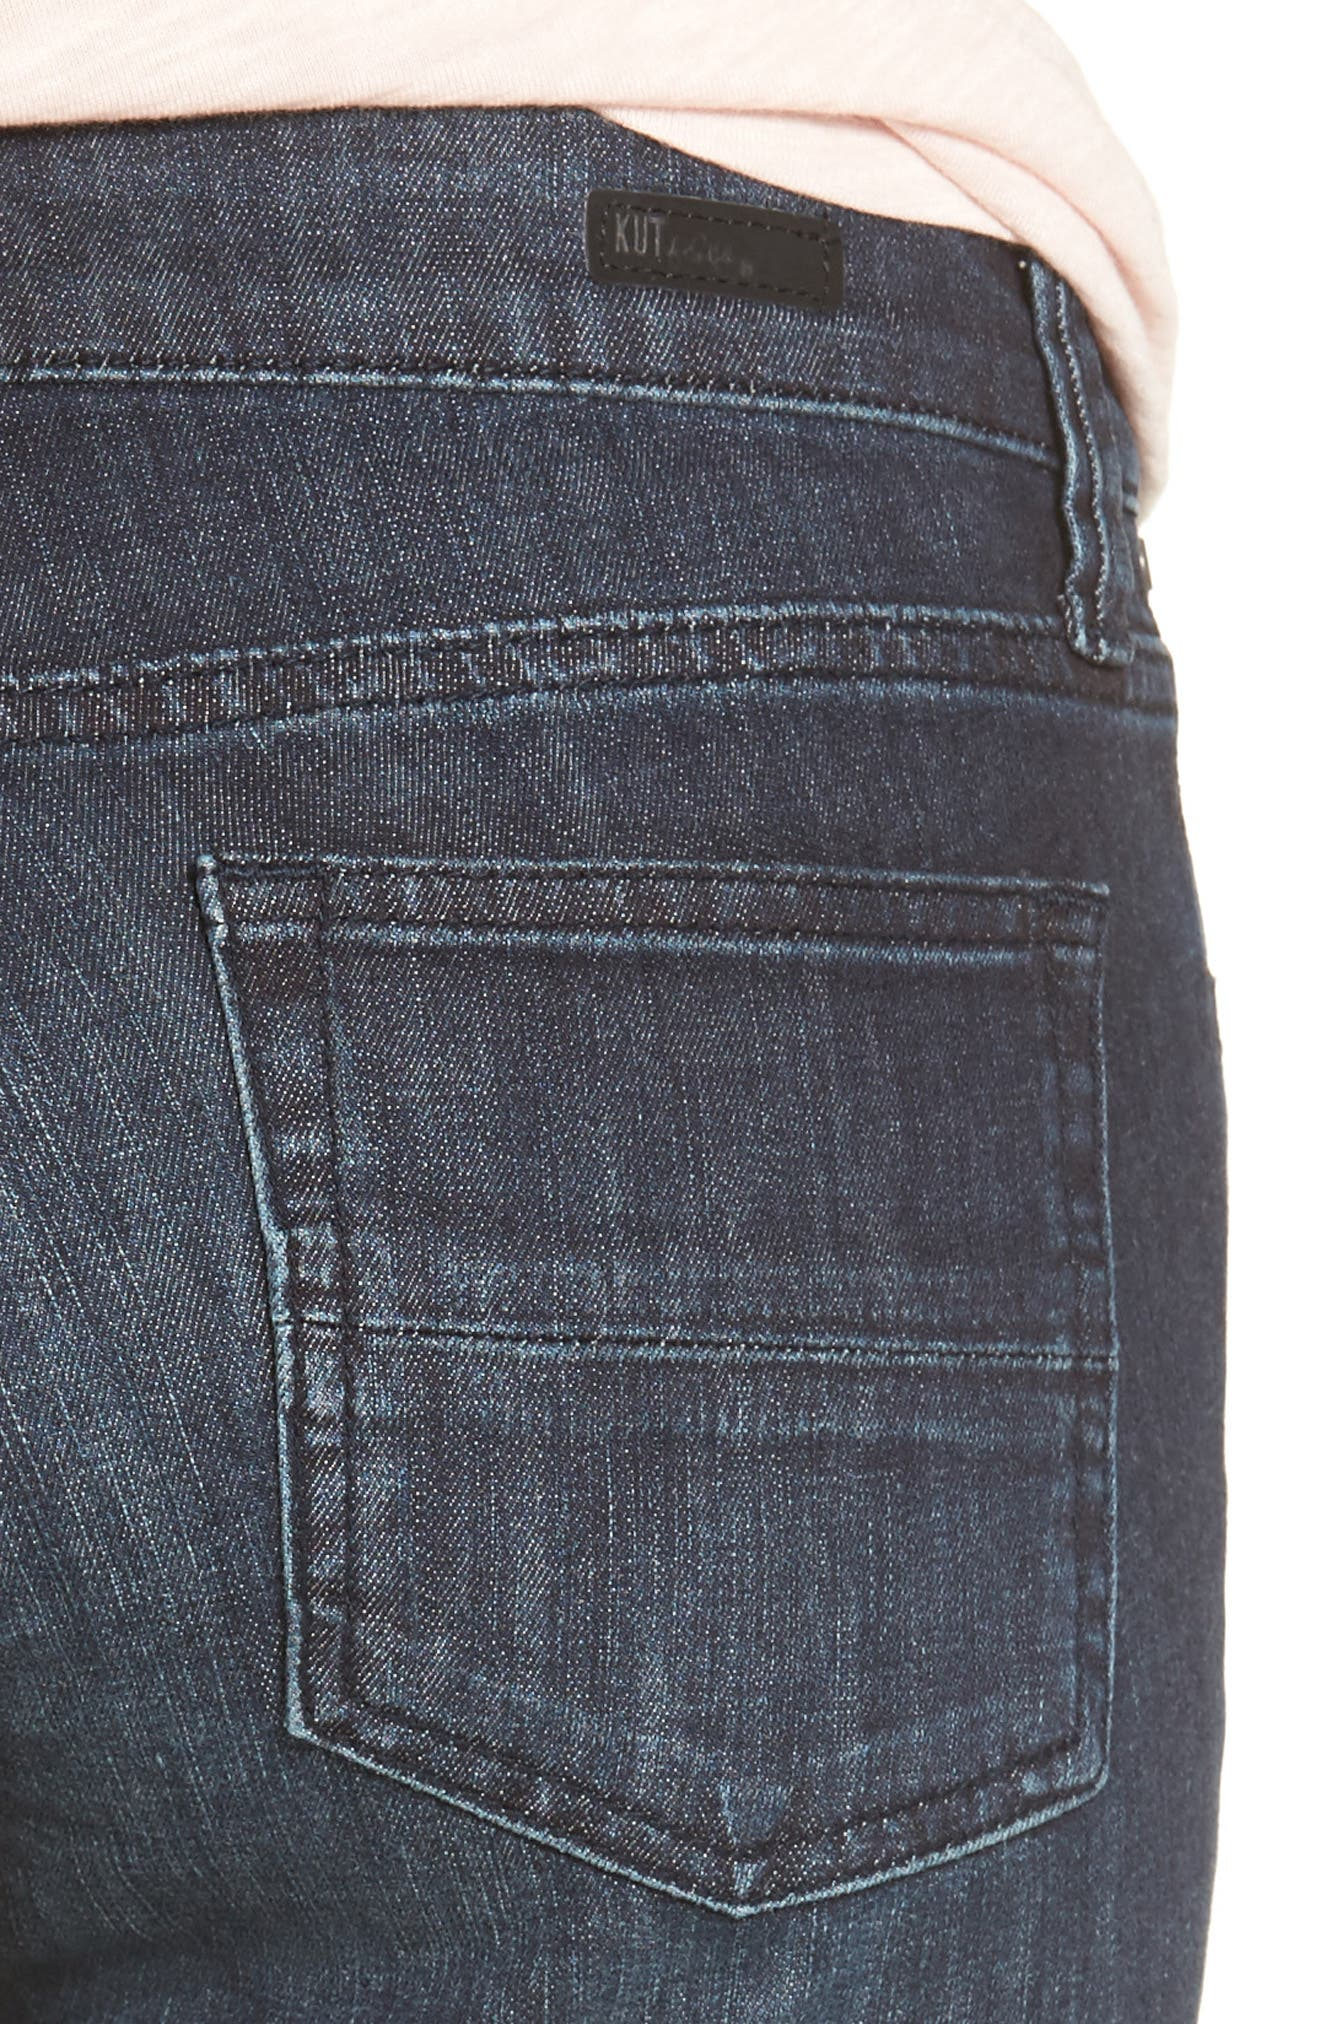 Alternate Image 4  - KUT from the Kloth 'Natalie' Twill Bermuda Shorts